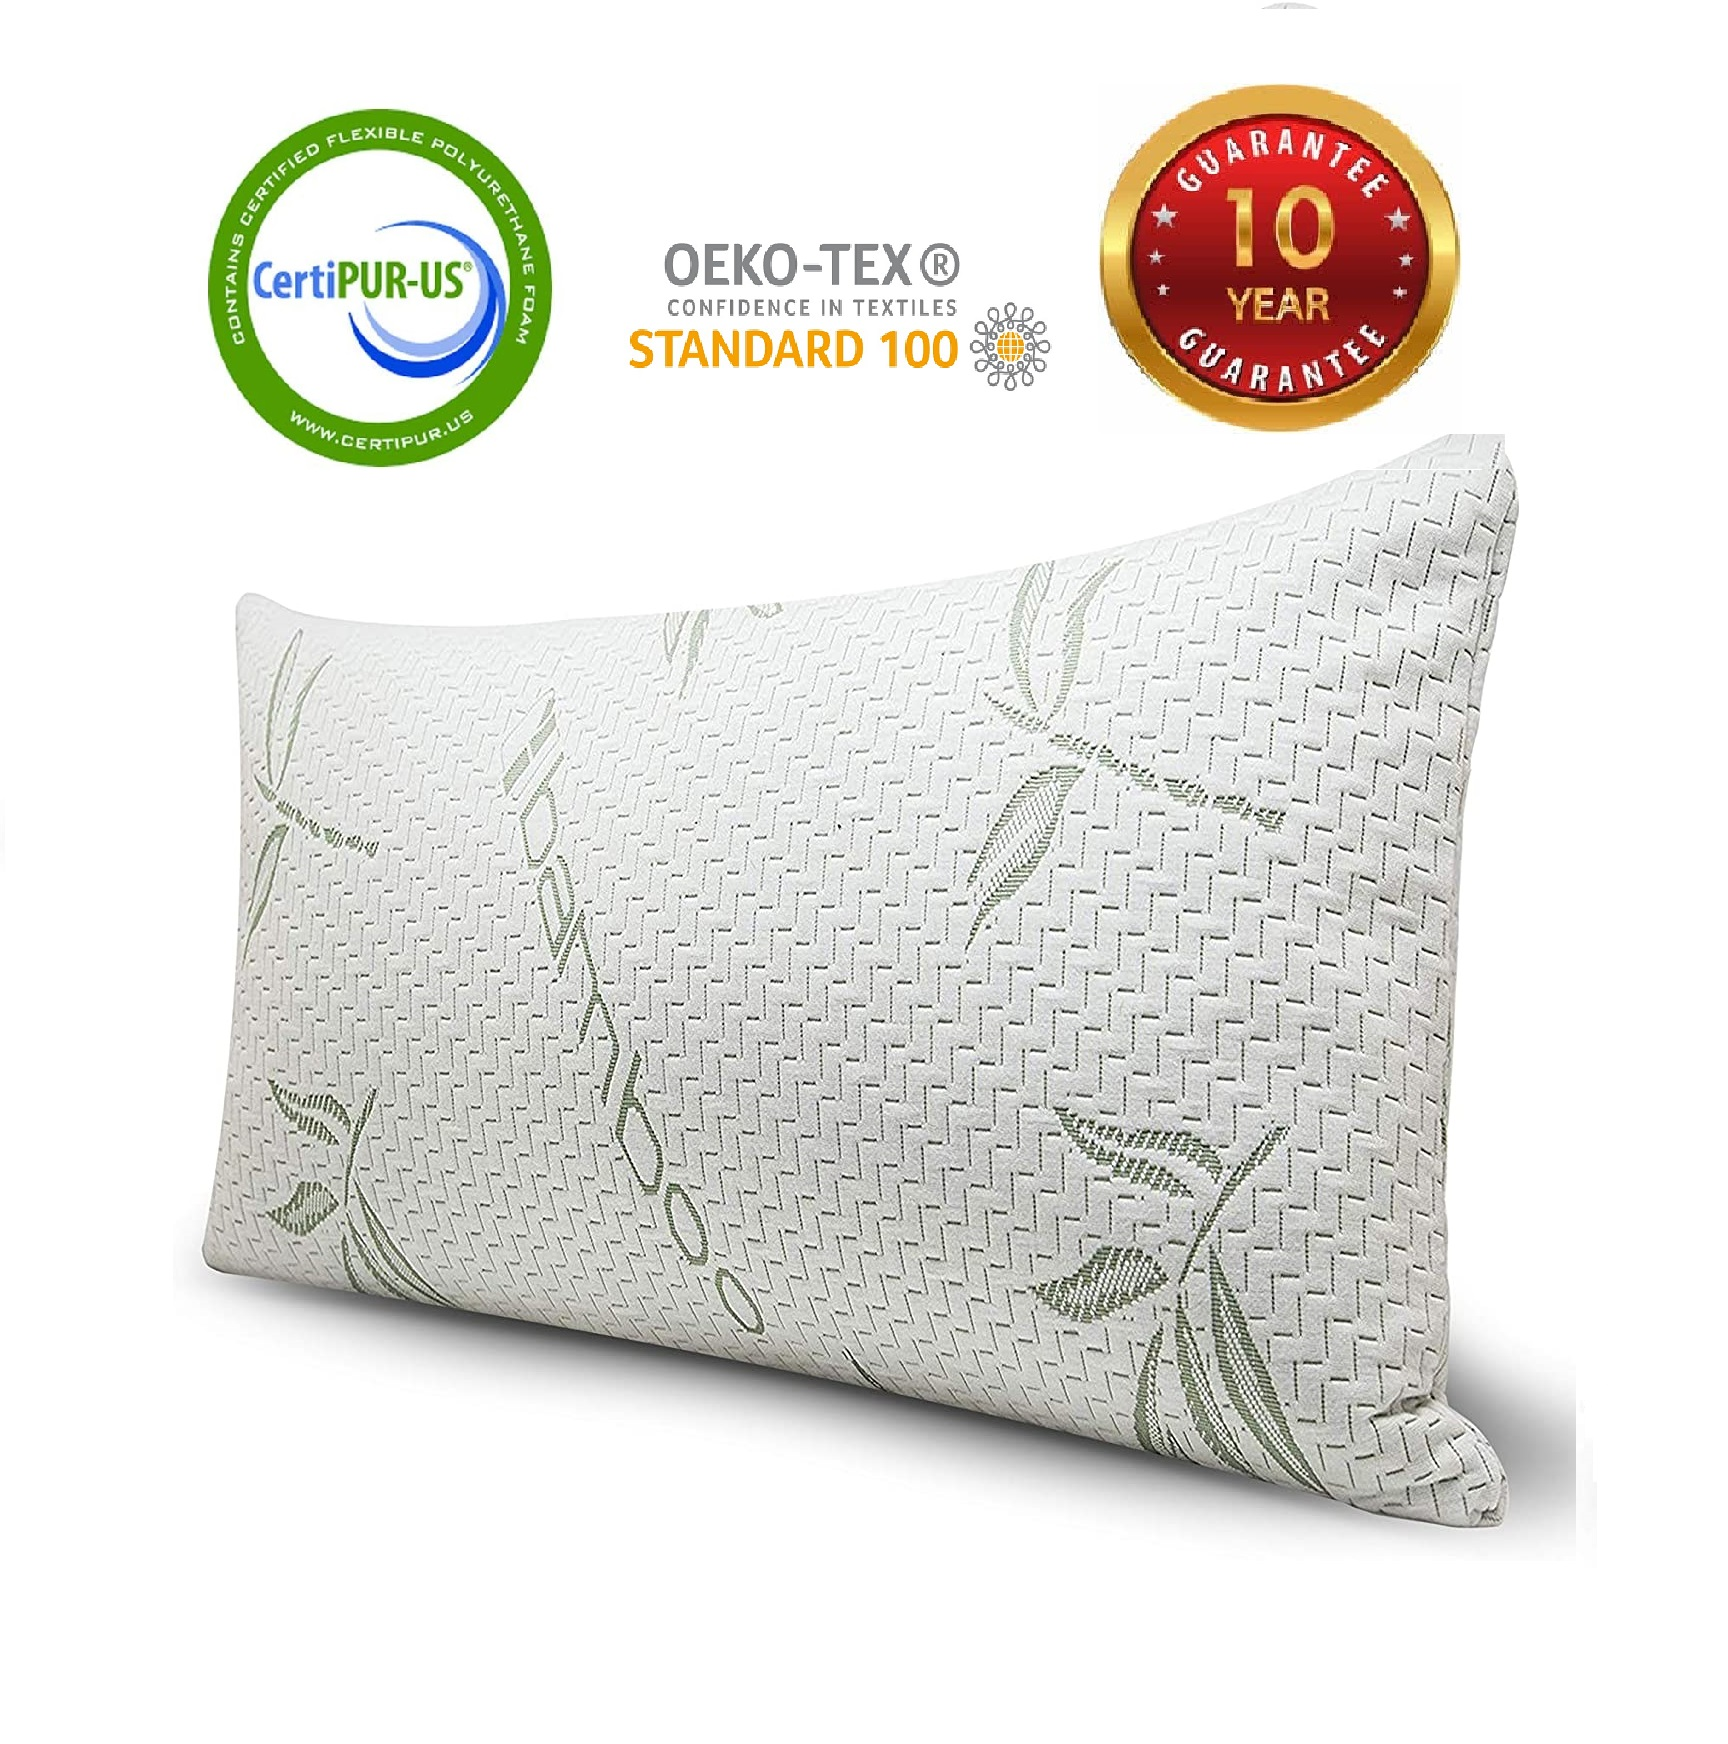 cool home goods queen size bamboo pillow shredded memory foam adjustable pillow with hypoallergenic removable washable bamboo rayon zipper cover 1